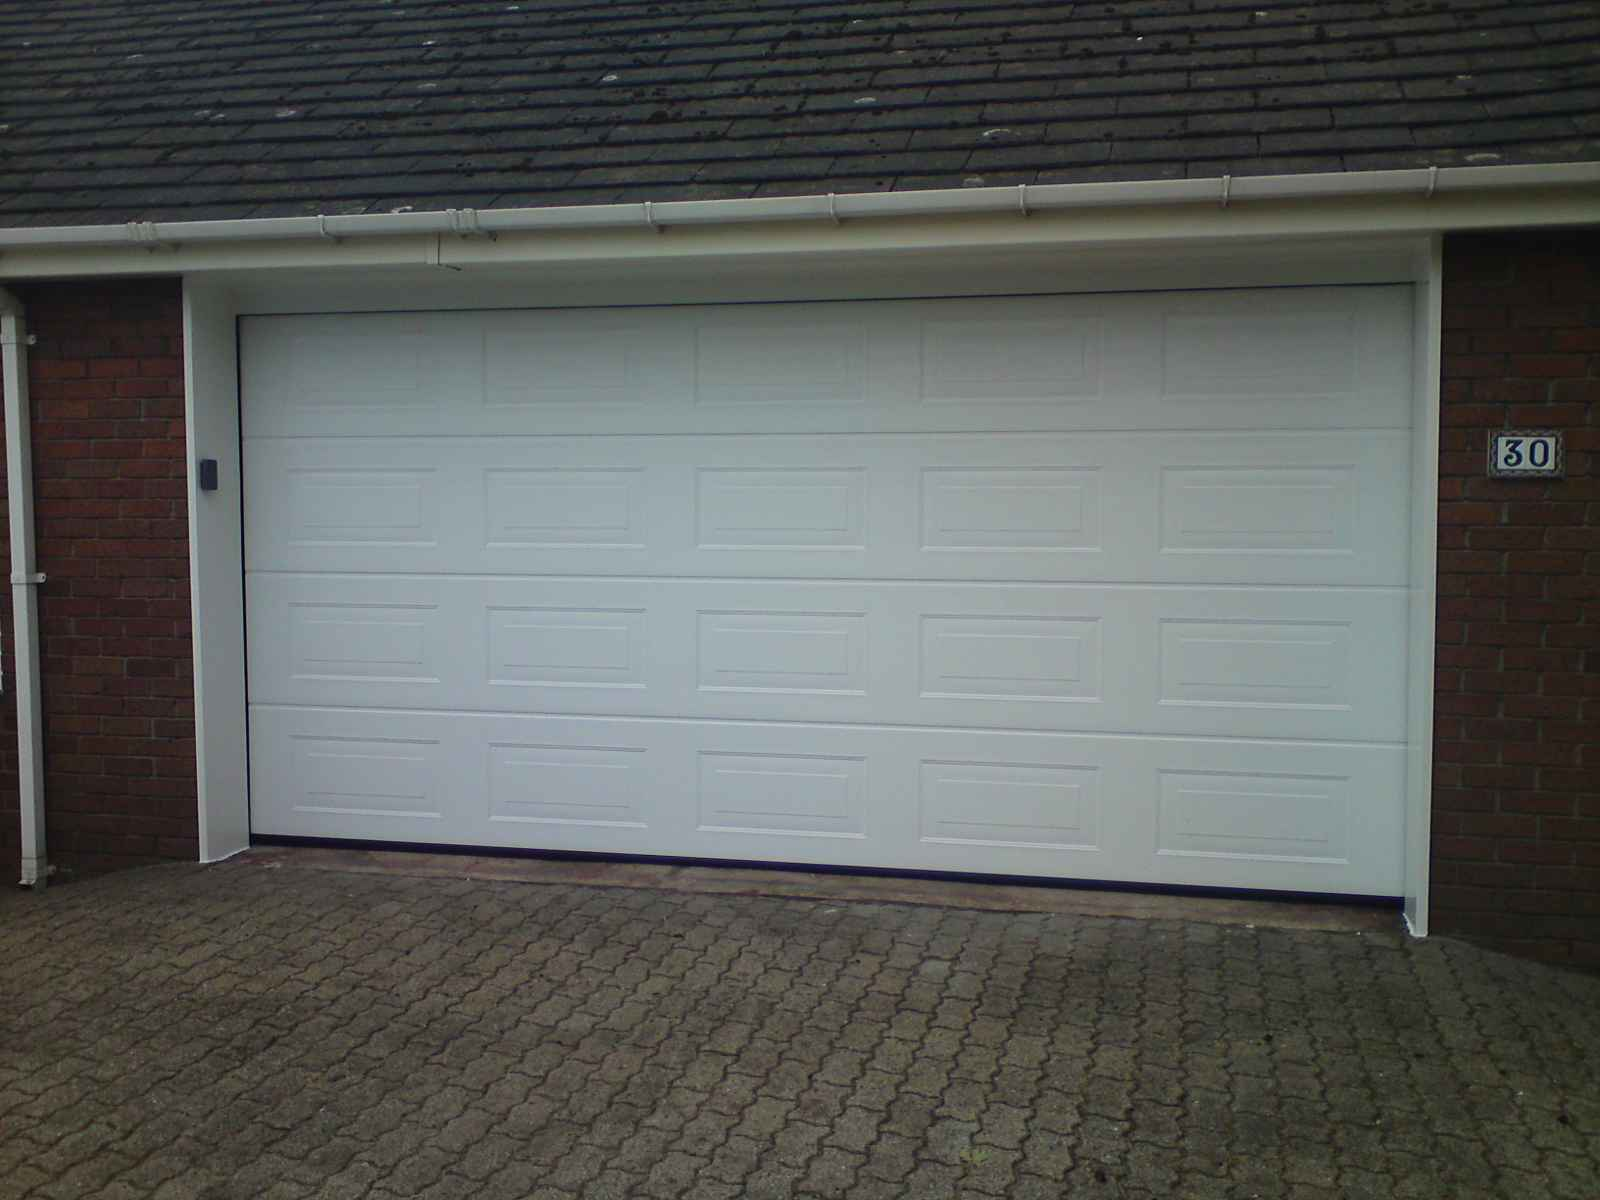 1200 #5B6970  Woodgrain Stylish Garage Door Clopay Coachman Affordable Garage Doors wallpaper Grarage Doors 38151600